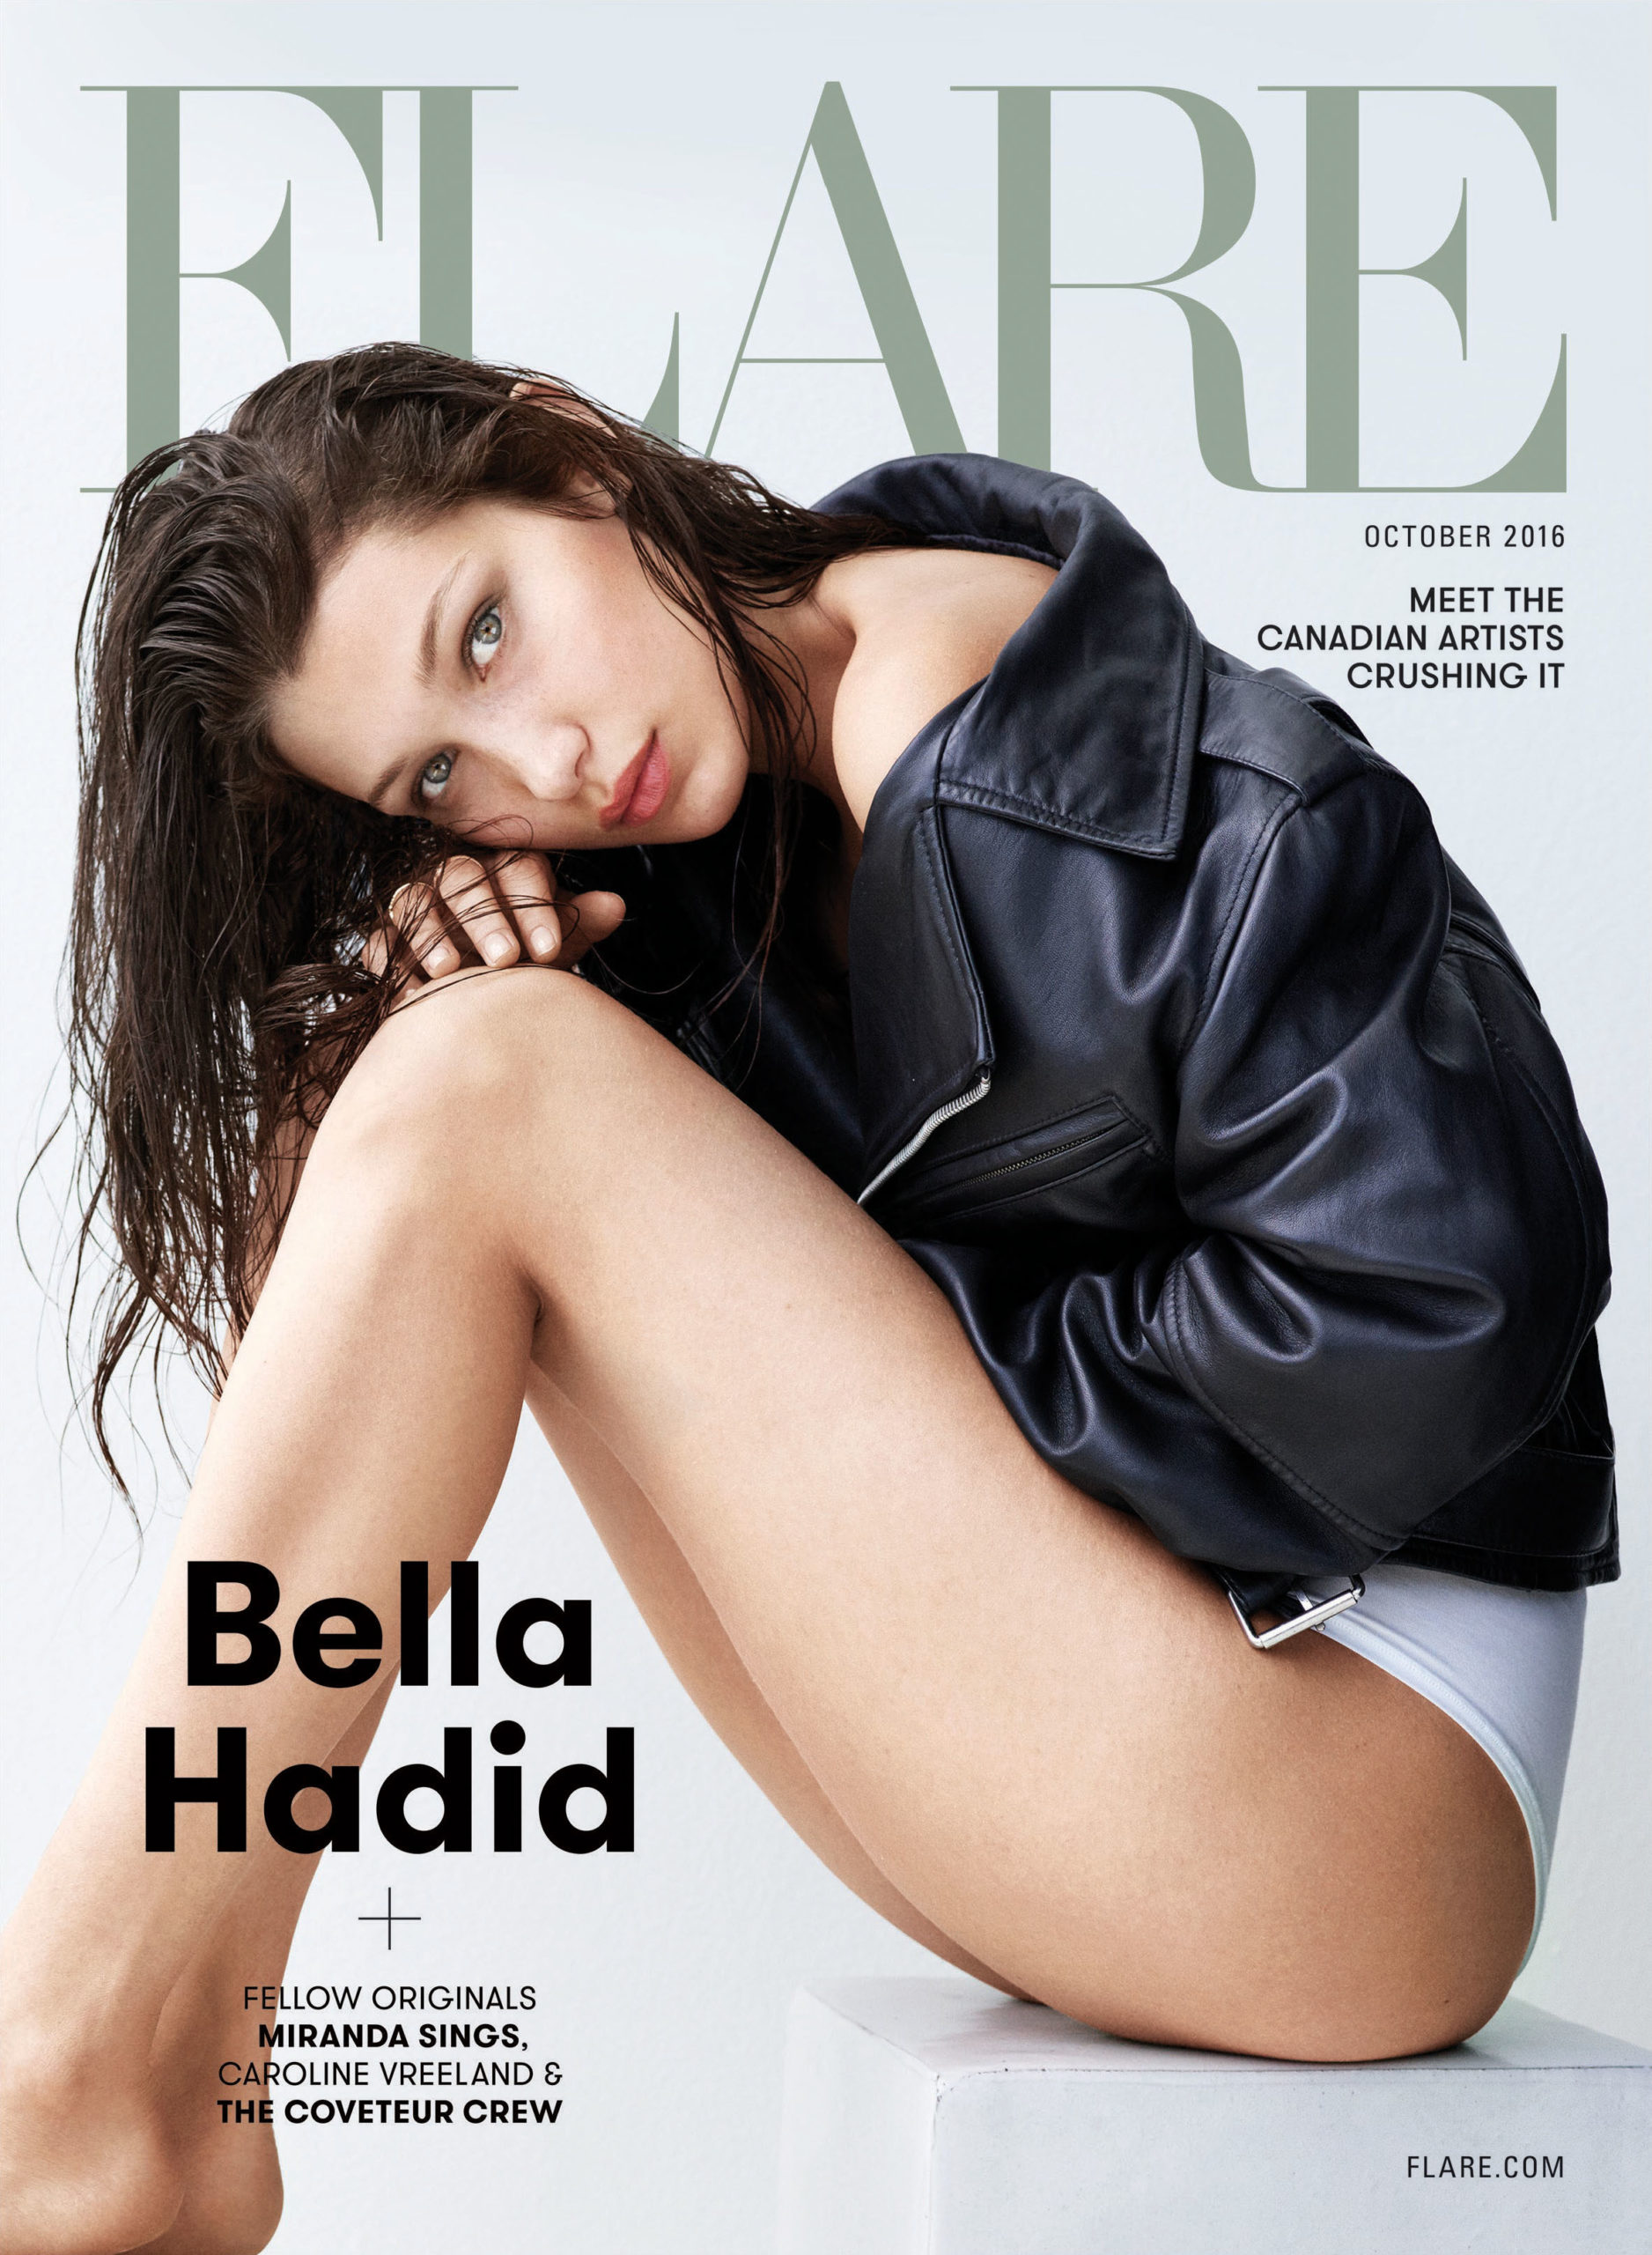 Bella Hadid wears a Calvin Klein Jeans jacket and Calvin Klein Underwear underwear. (Photography: Nino Muñoz, Stockland Martel. Styling:  Isabel Dupré, Lalaland Artists. Hair: David Von Cannon, Streeters. Makeup: Rose-Marie Swift, RMS Beauty, Streeters. Nails: Yuko Wada, Dior Vernis, Atelier Management. Furniture: HomeStories.com.)